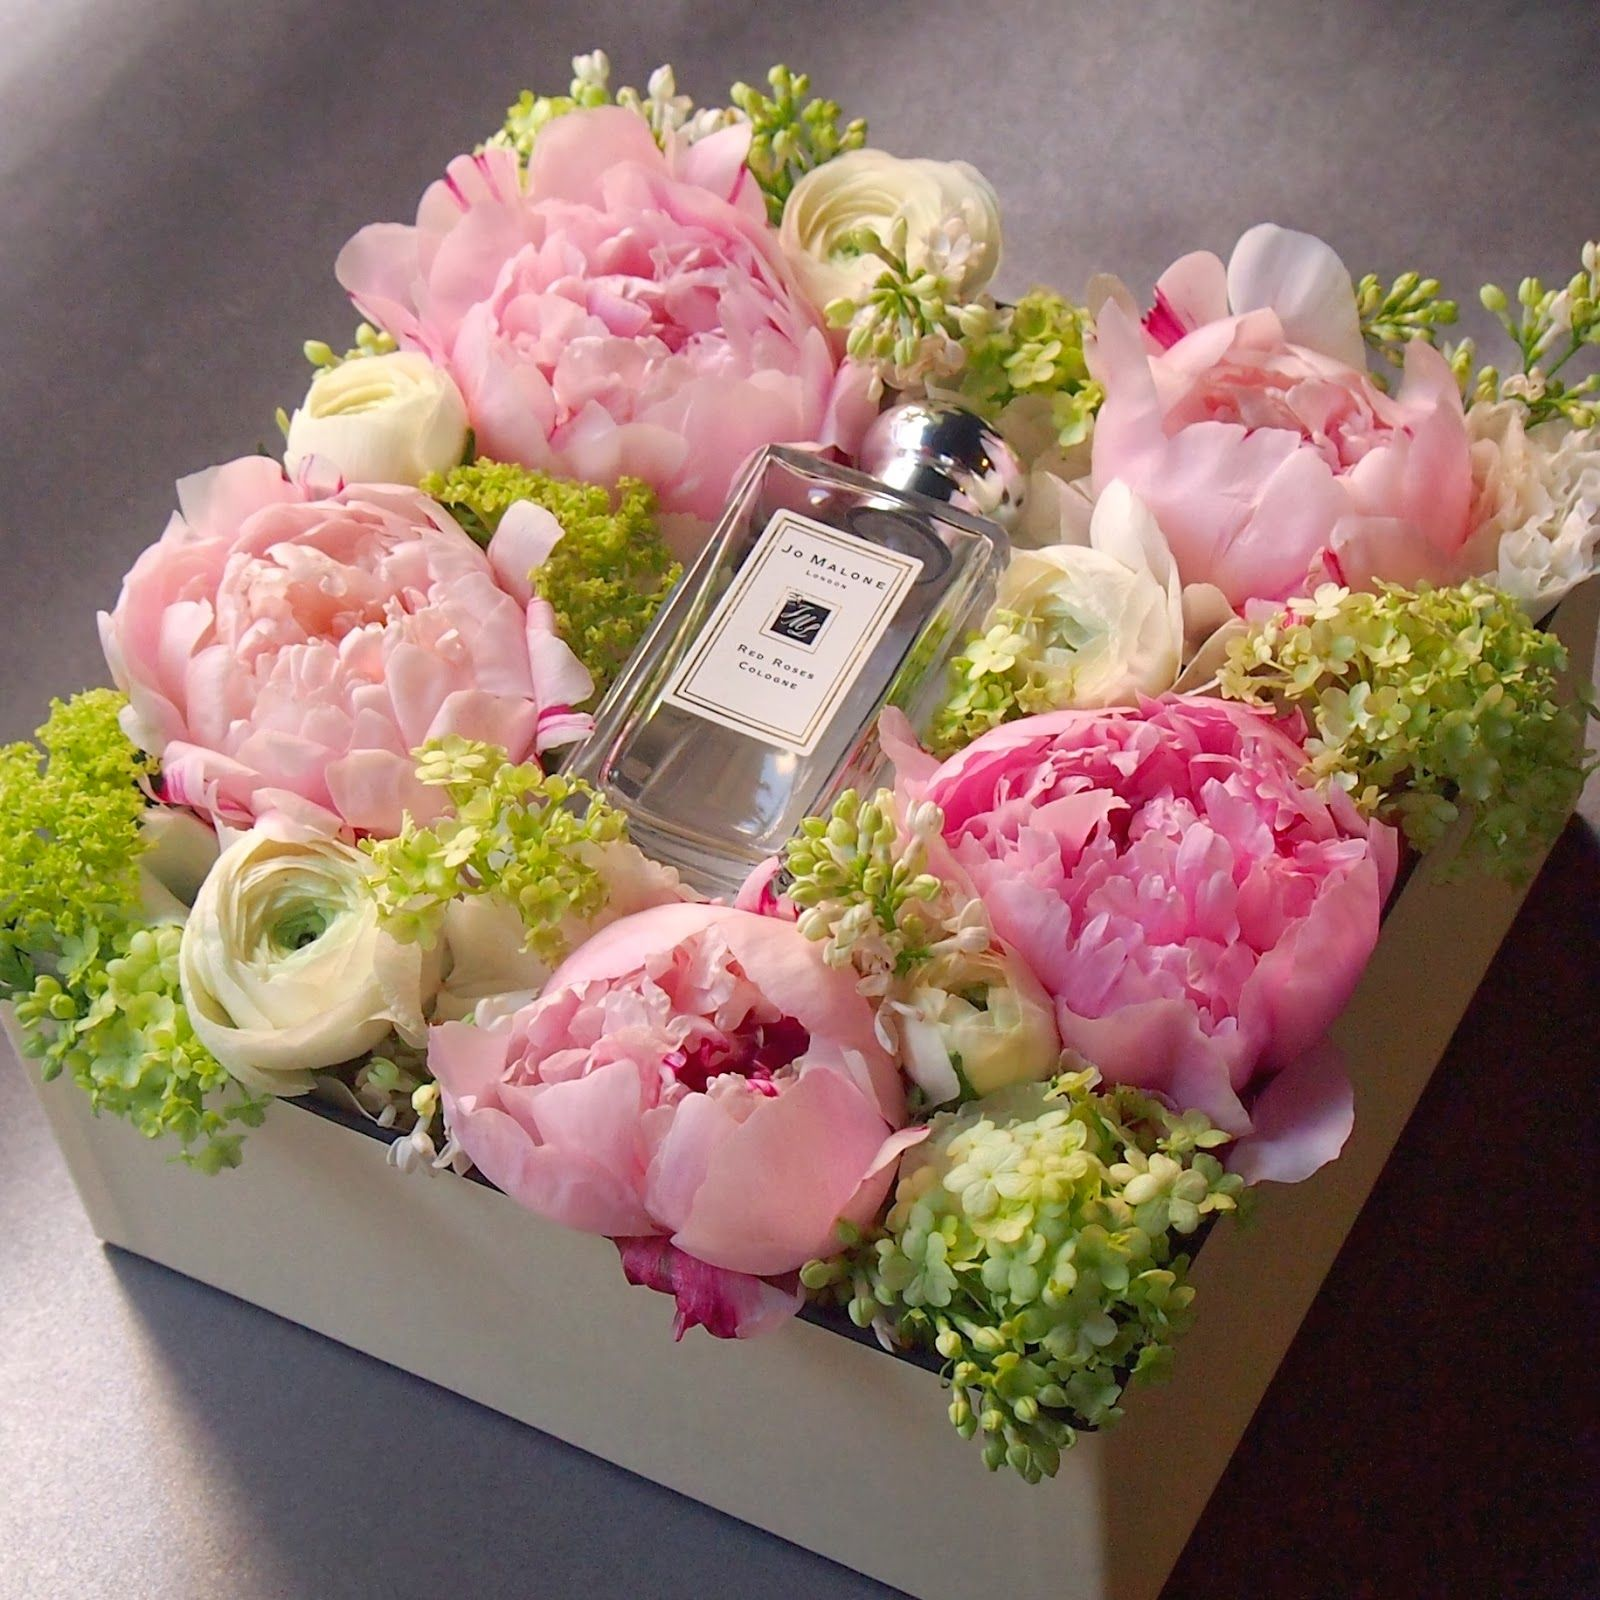 Jf floral couture discover the perfect valentines gift with jo jf floral couture discover the perfect valentines gift with jo malone london the one izmirmasajfo Image collections